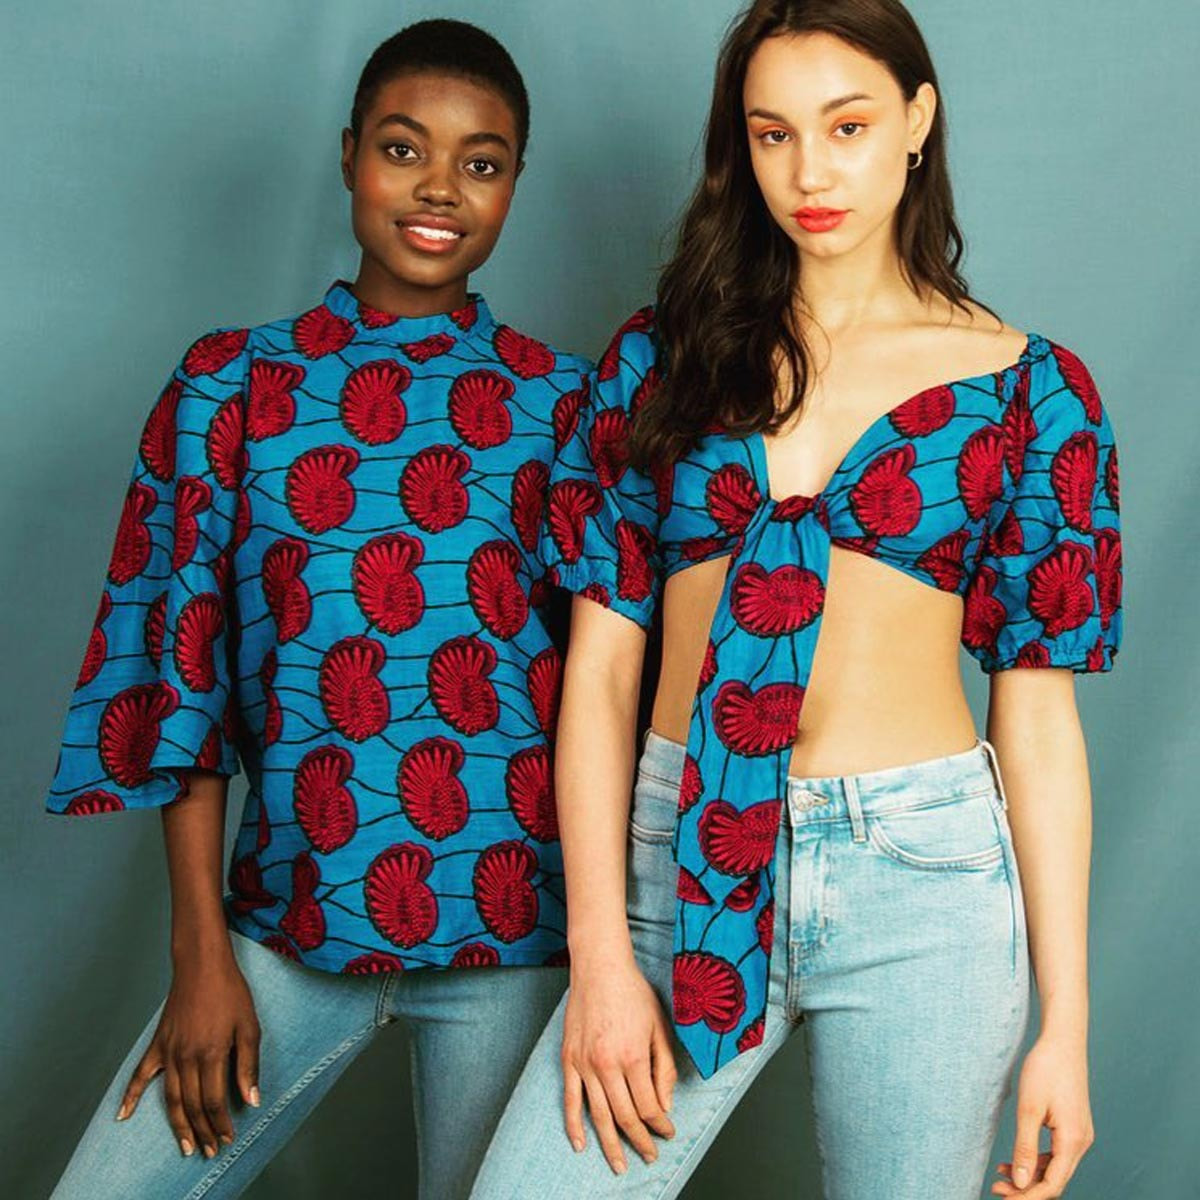 Women's empowerment, zero waste, clean energy... UK brand Mayamiko does it all